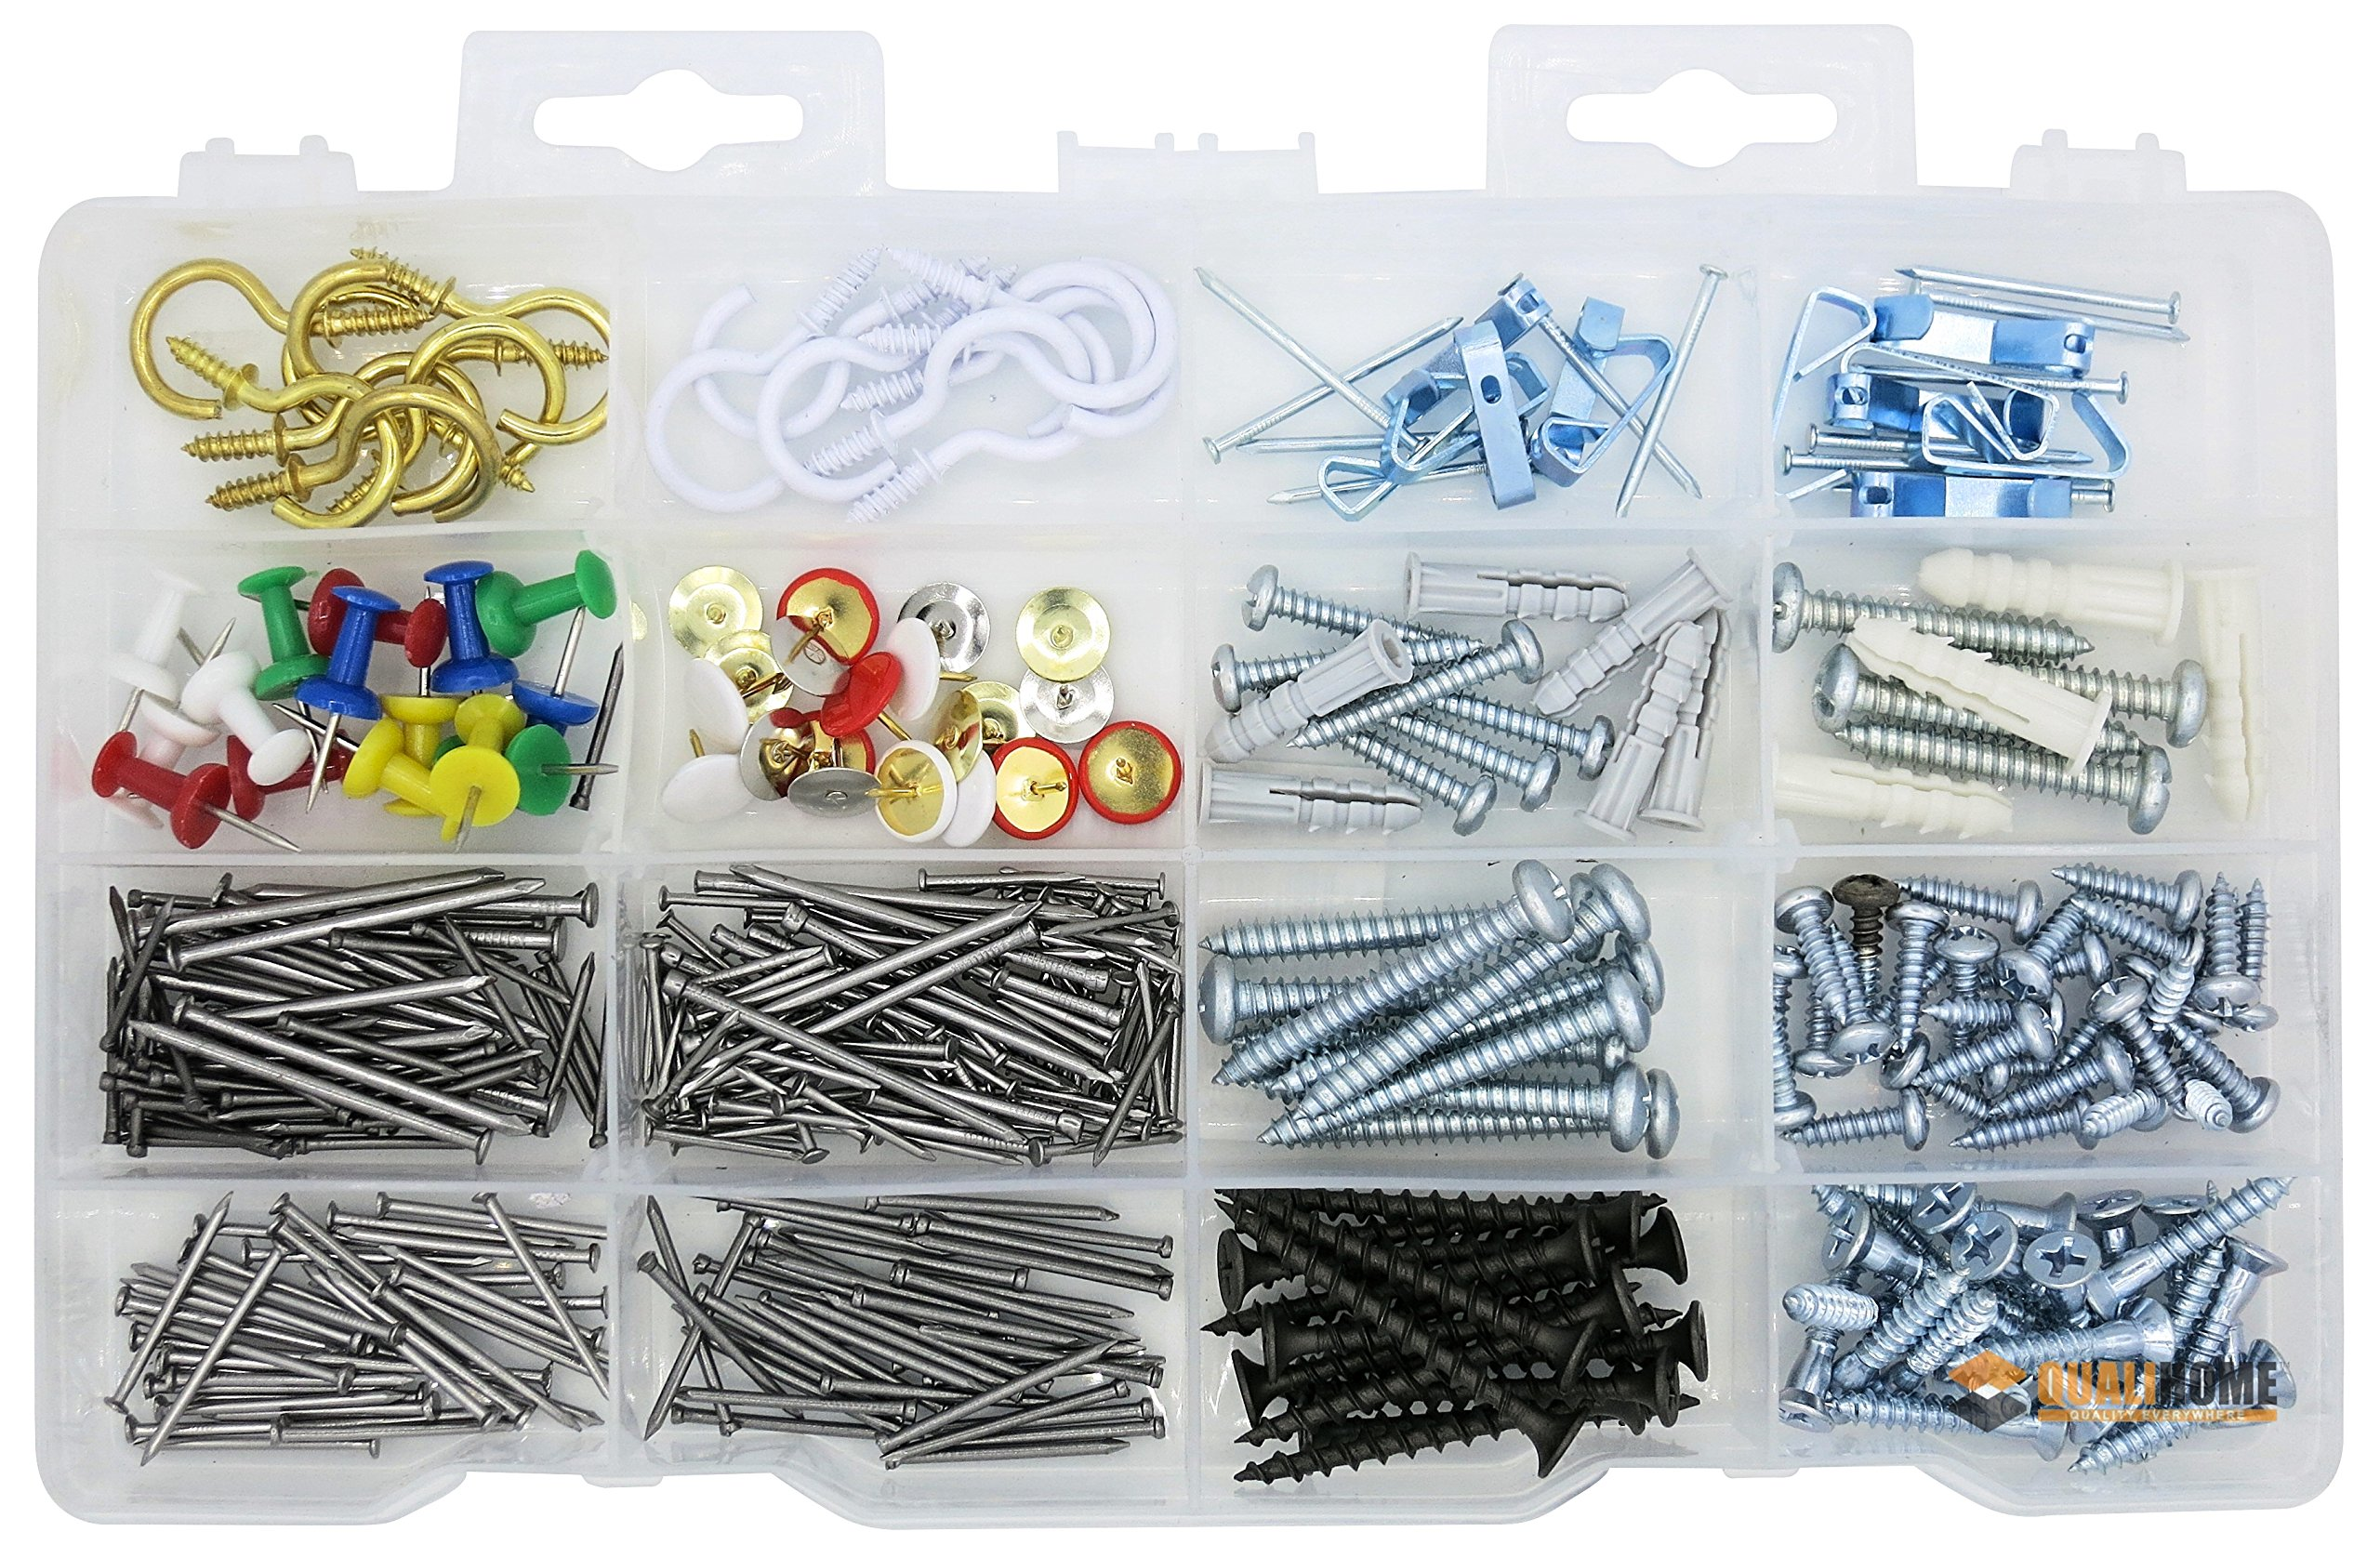 Household Assortment Kit, Cup Hooks, Picture Hangers, Push Pins, Thumb Tacks, Brads, Plastic Anchors, Screws and Nails, 360 Pieces.